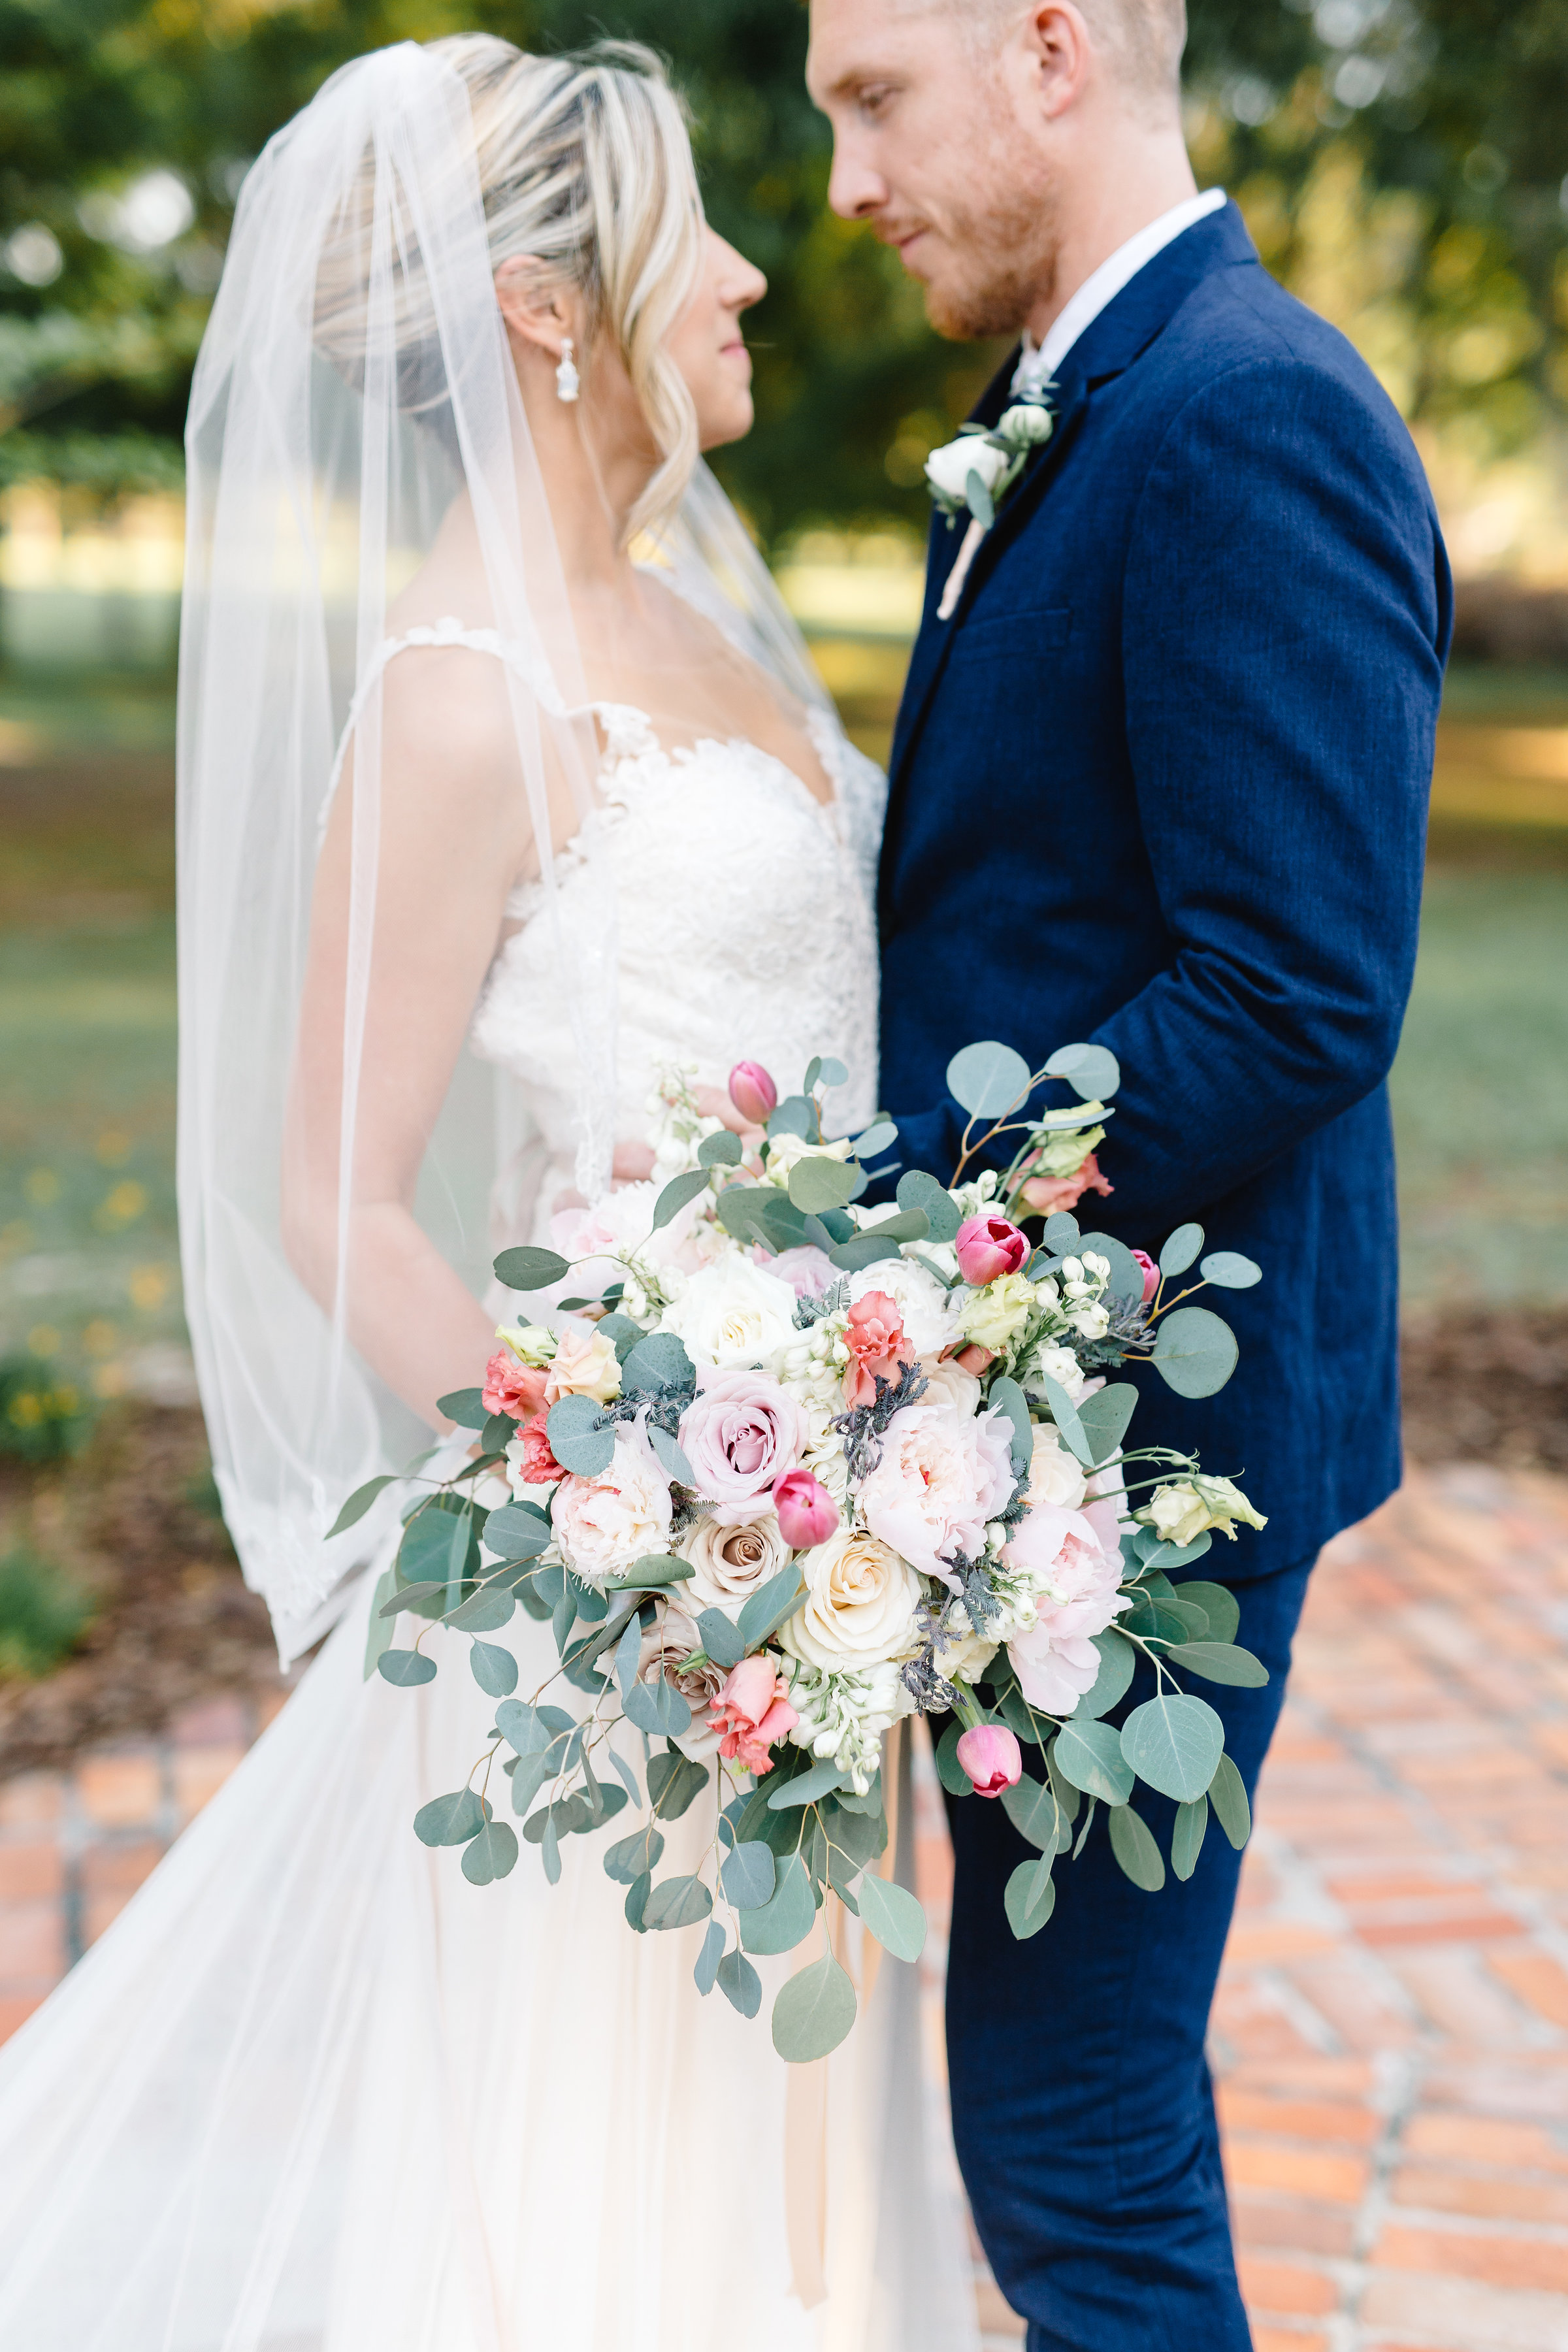 Bride & groom with bouquet by Bluegrass Chic